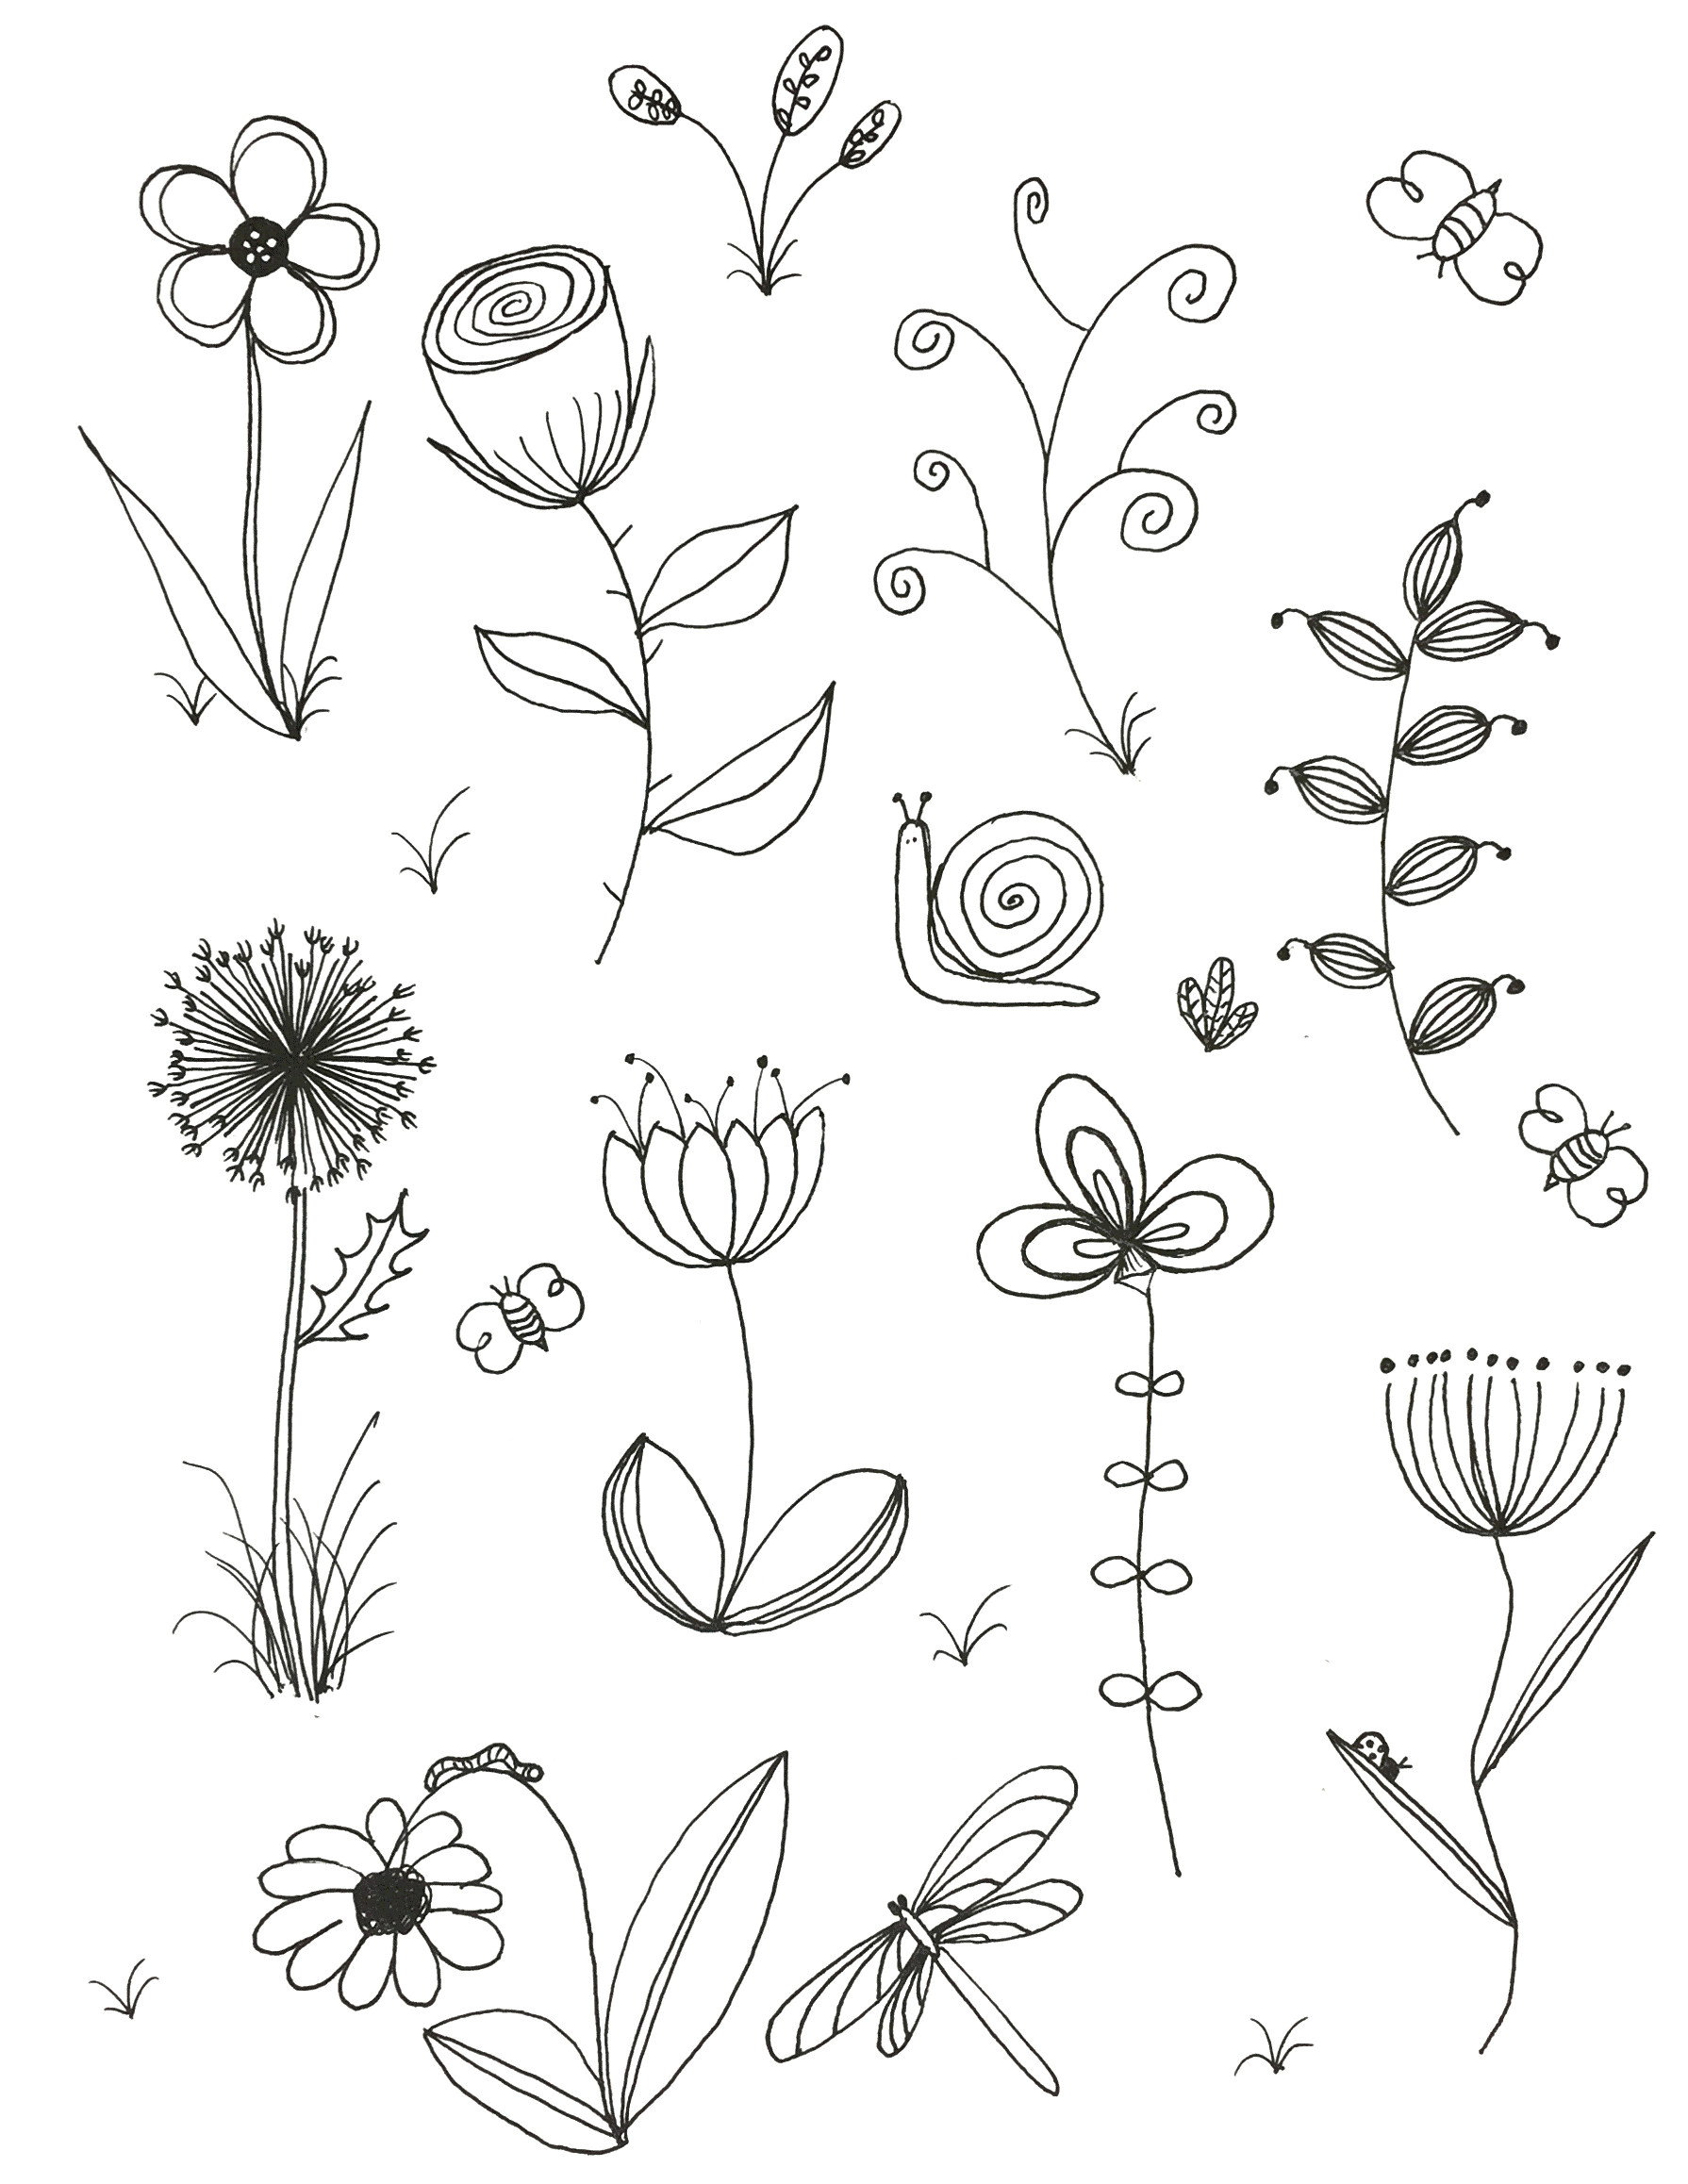 easy to draw spring pictures my original art inspired by many doodle flower line drawing of